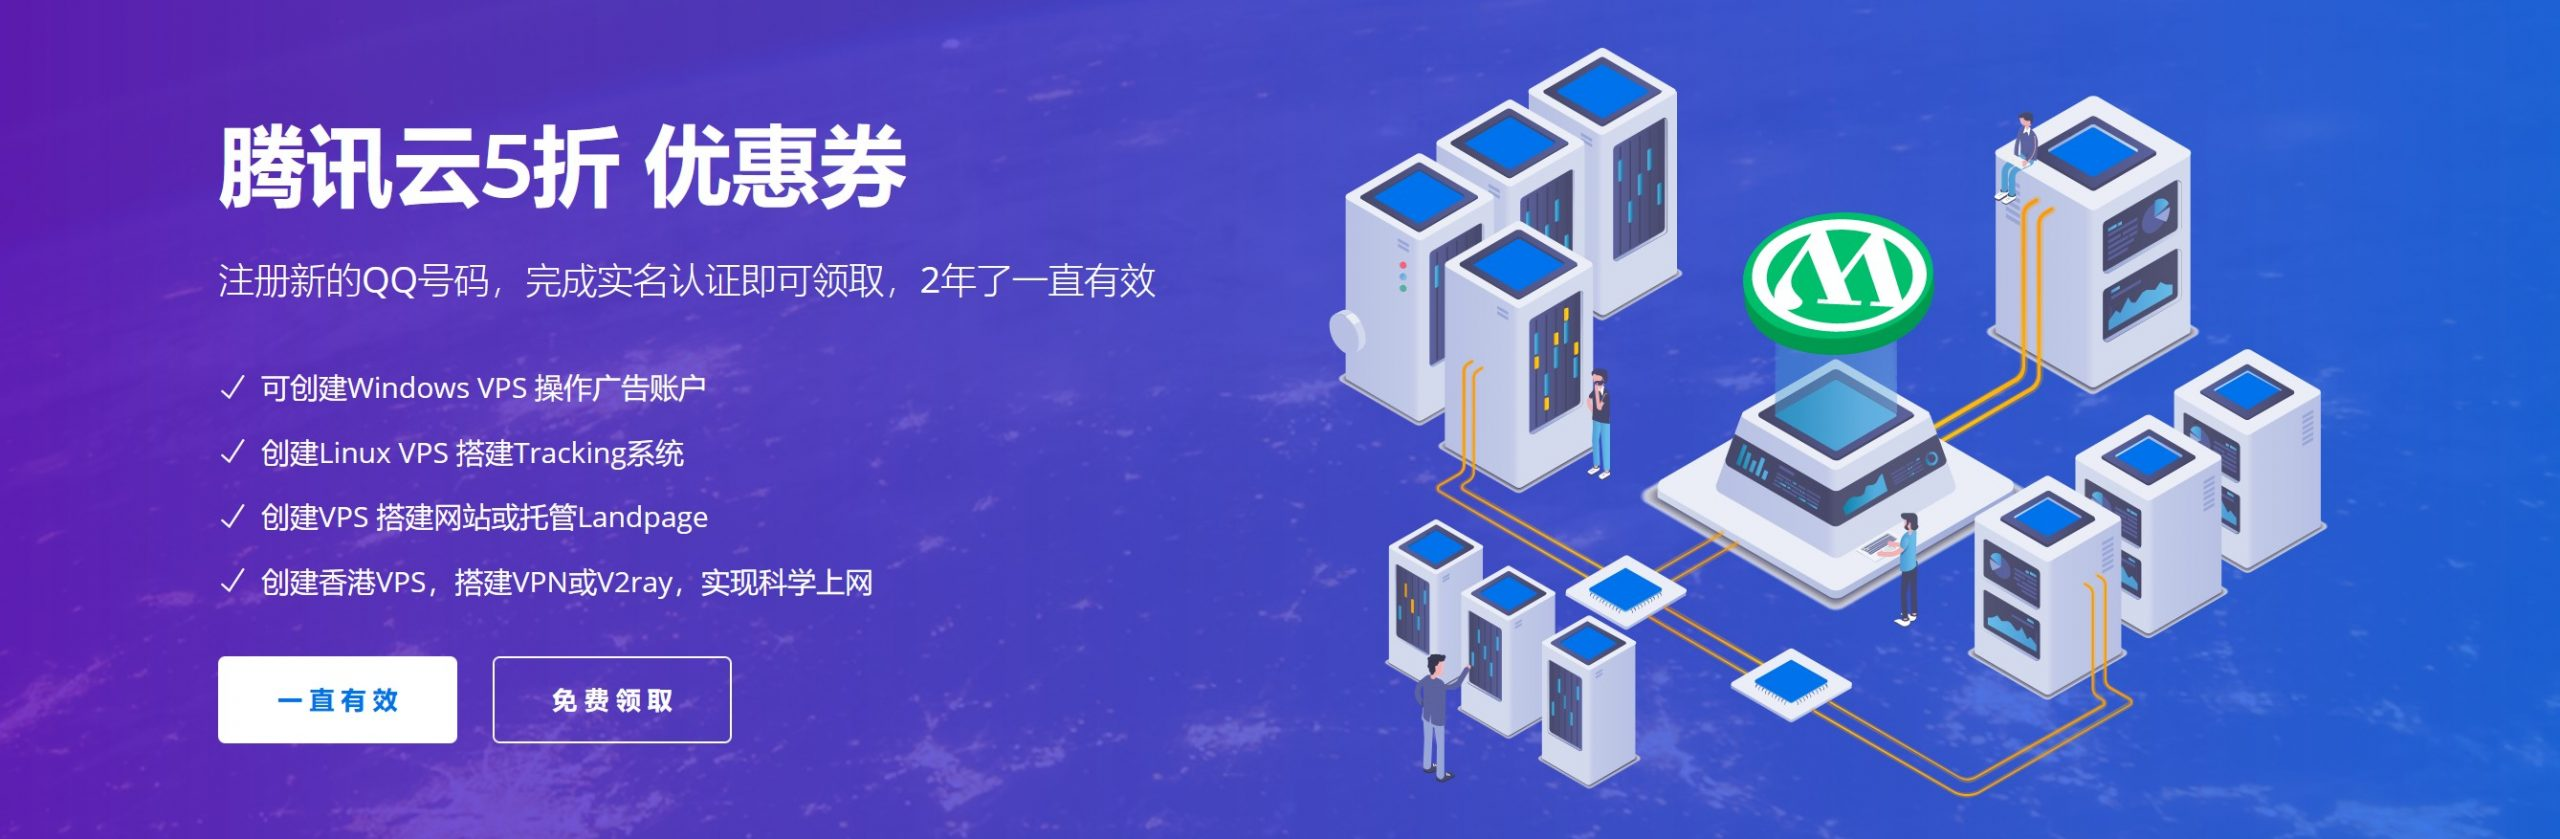 tencent-cloud-banner